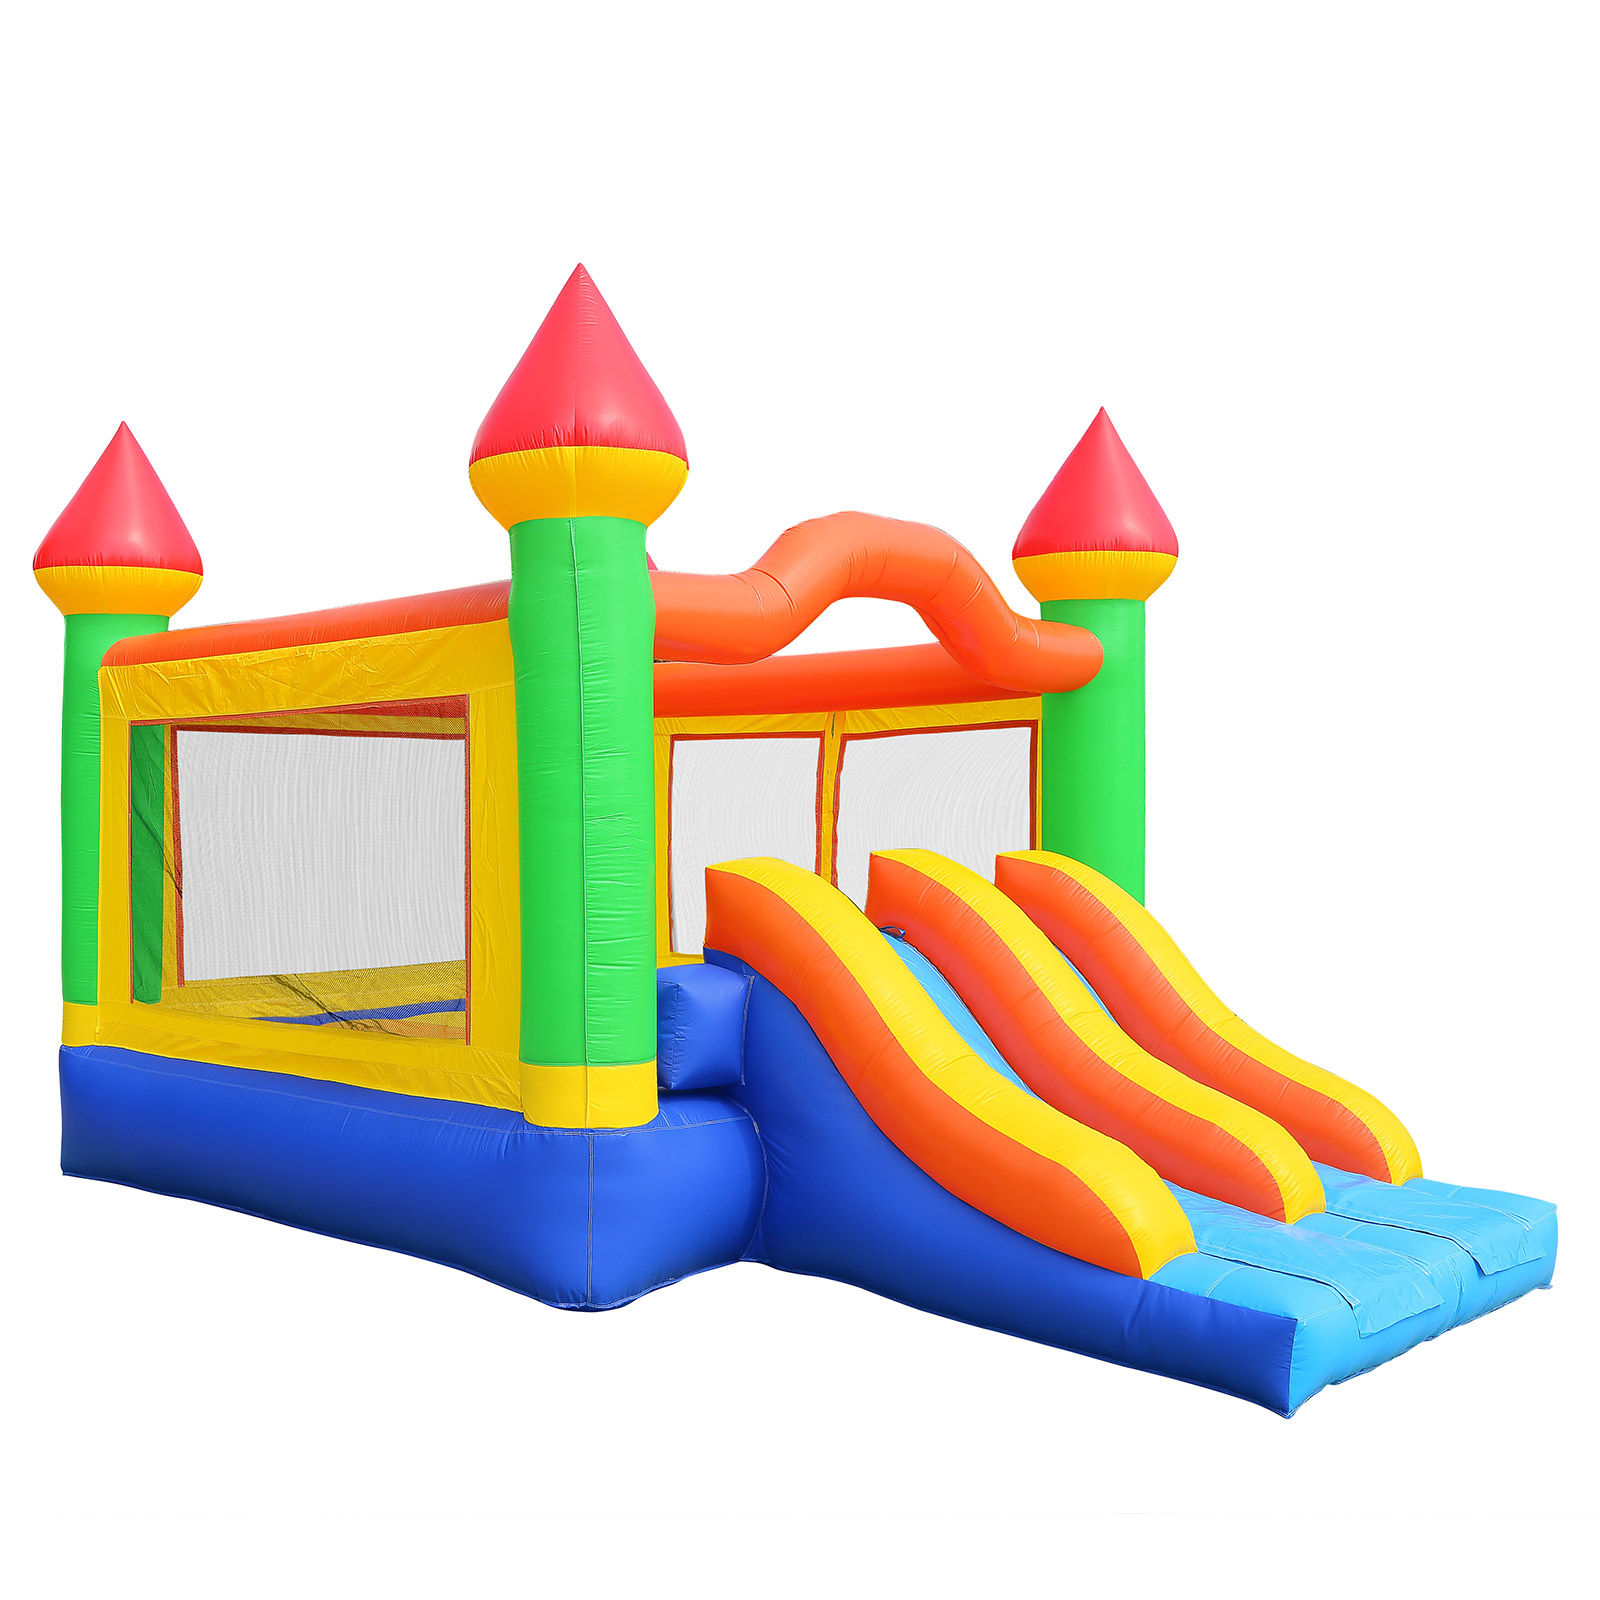 Inflatable HQ Commercial Grade Mega Double Slide Castle Bounce House 100% PVC and Blower by Inflatable HQ